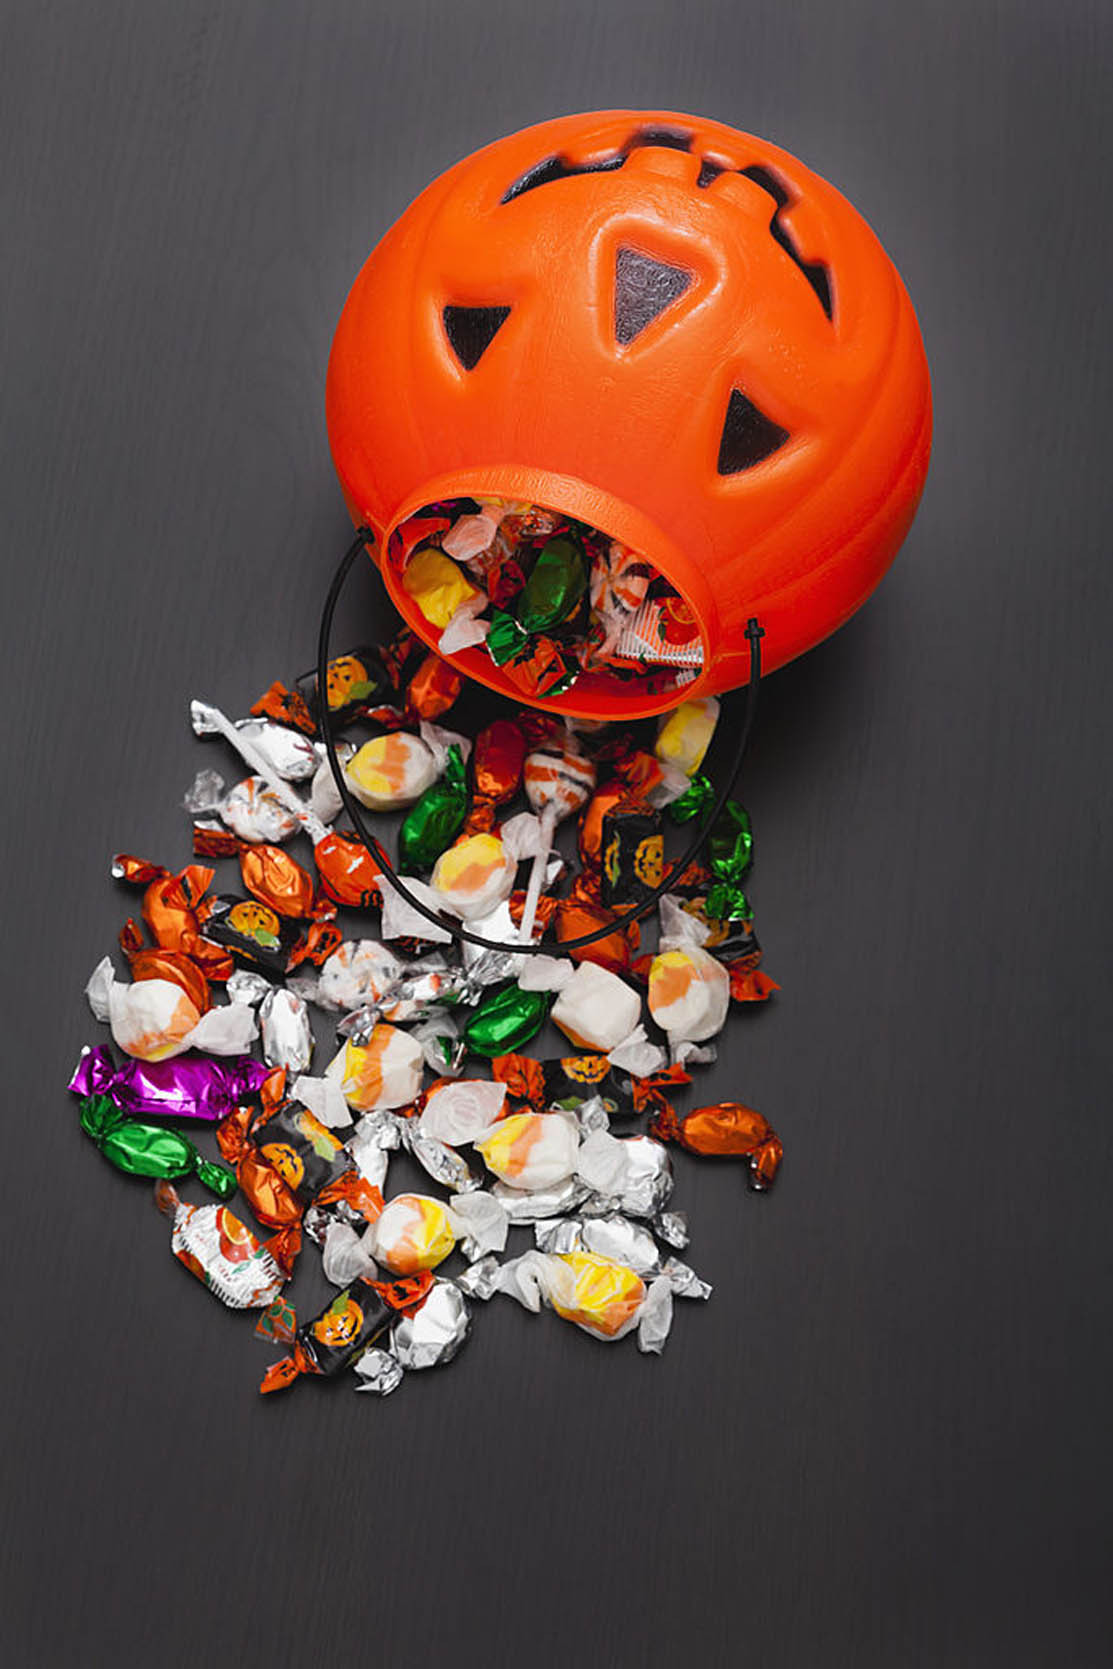 Halloween horror for mother after children from neighbouring town take candy